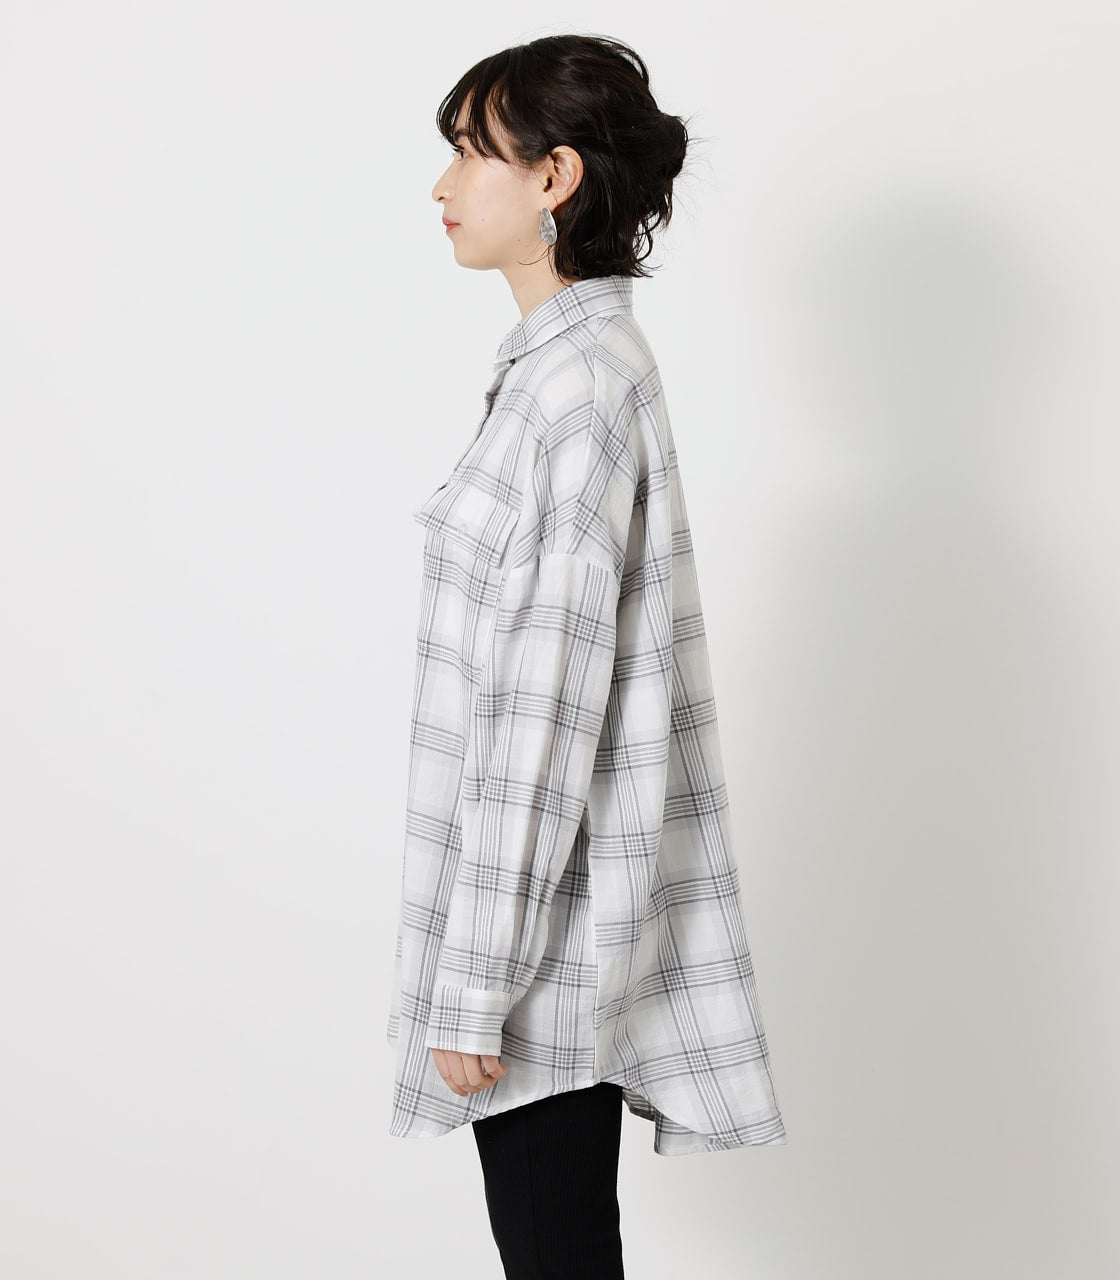 CHECK LOOSE SHIRT/チェックルーズシャツ 詳細画像 柄WHT 5